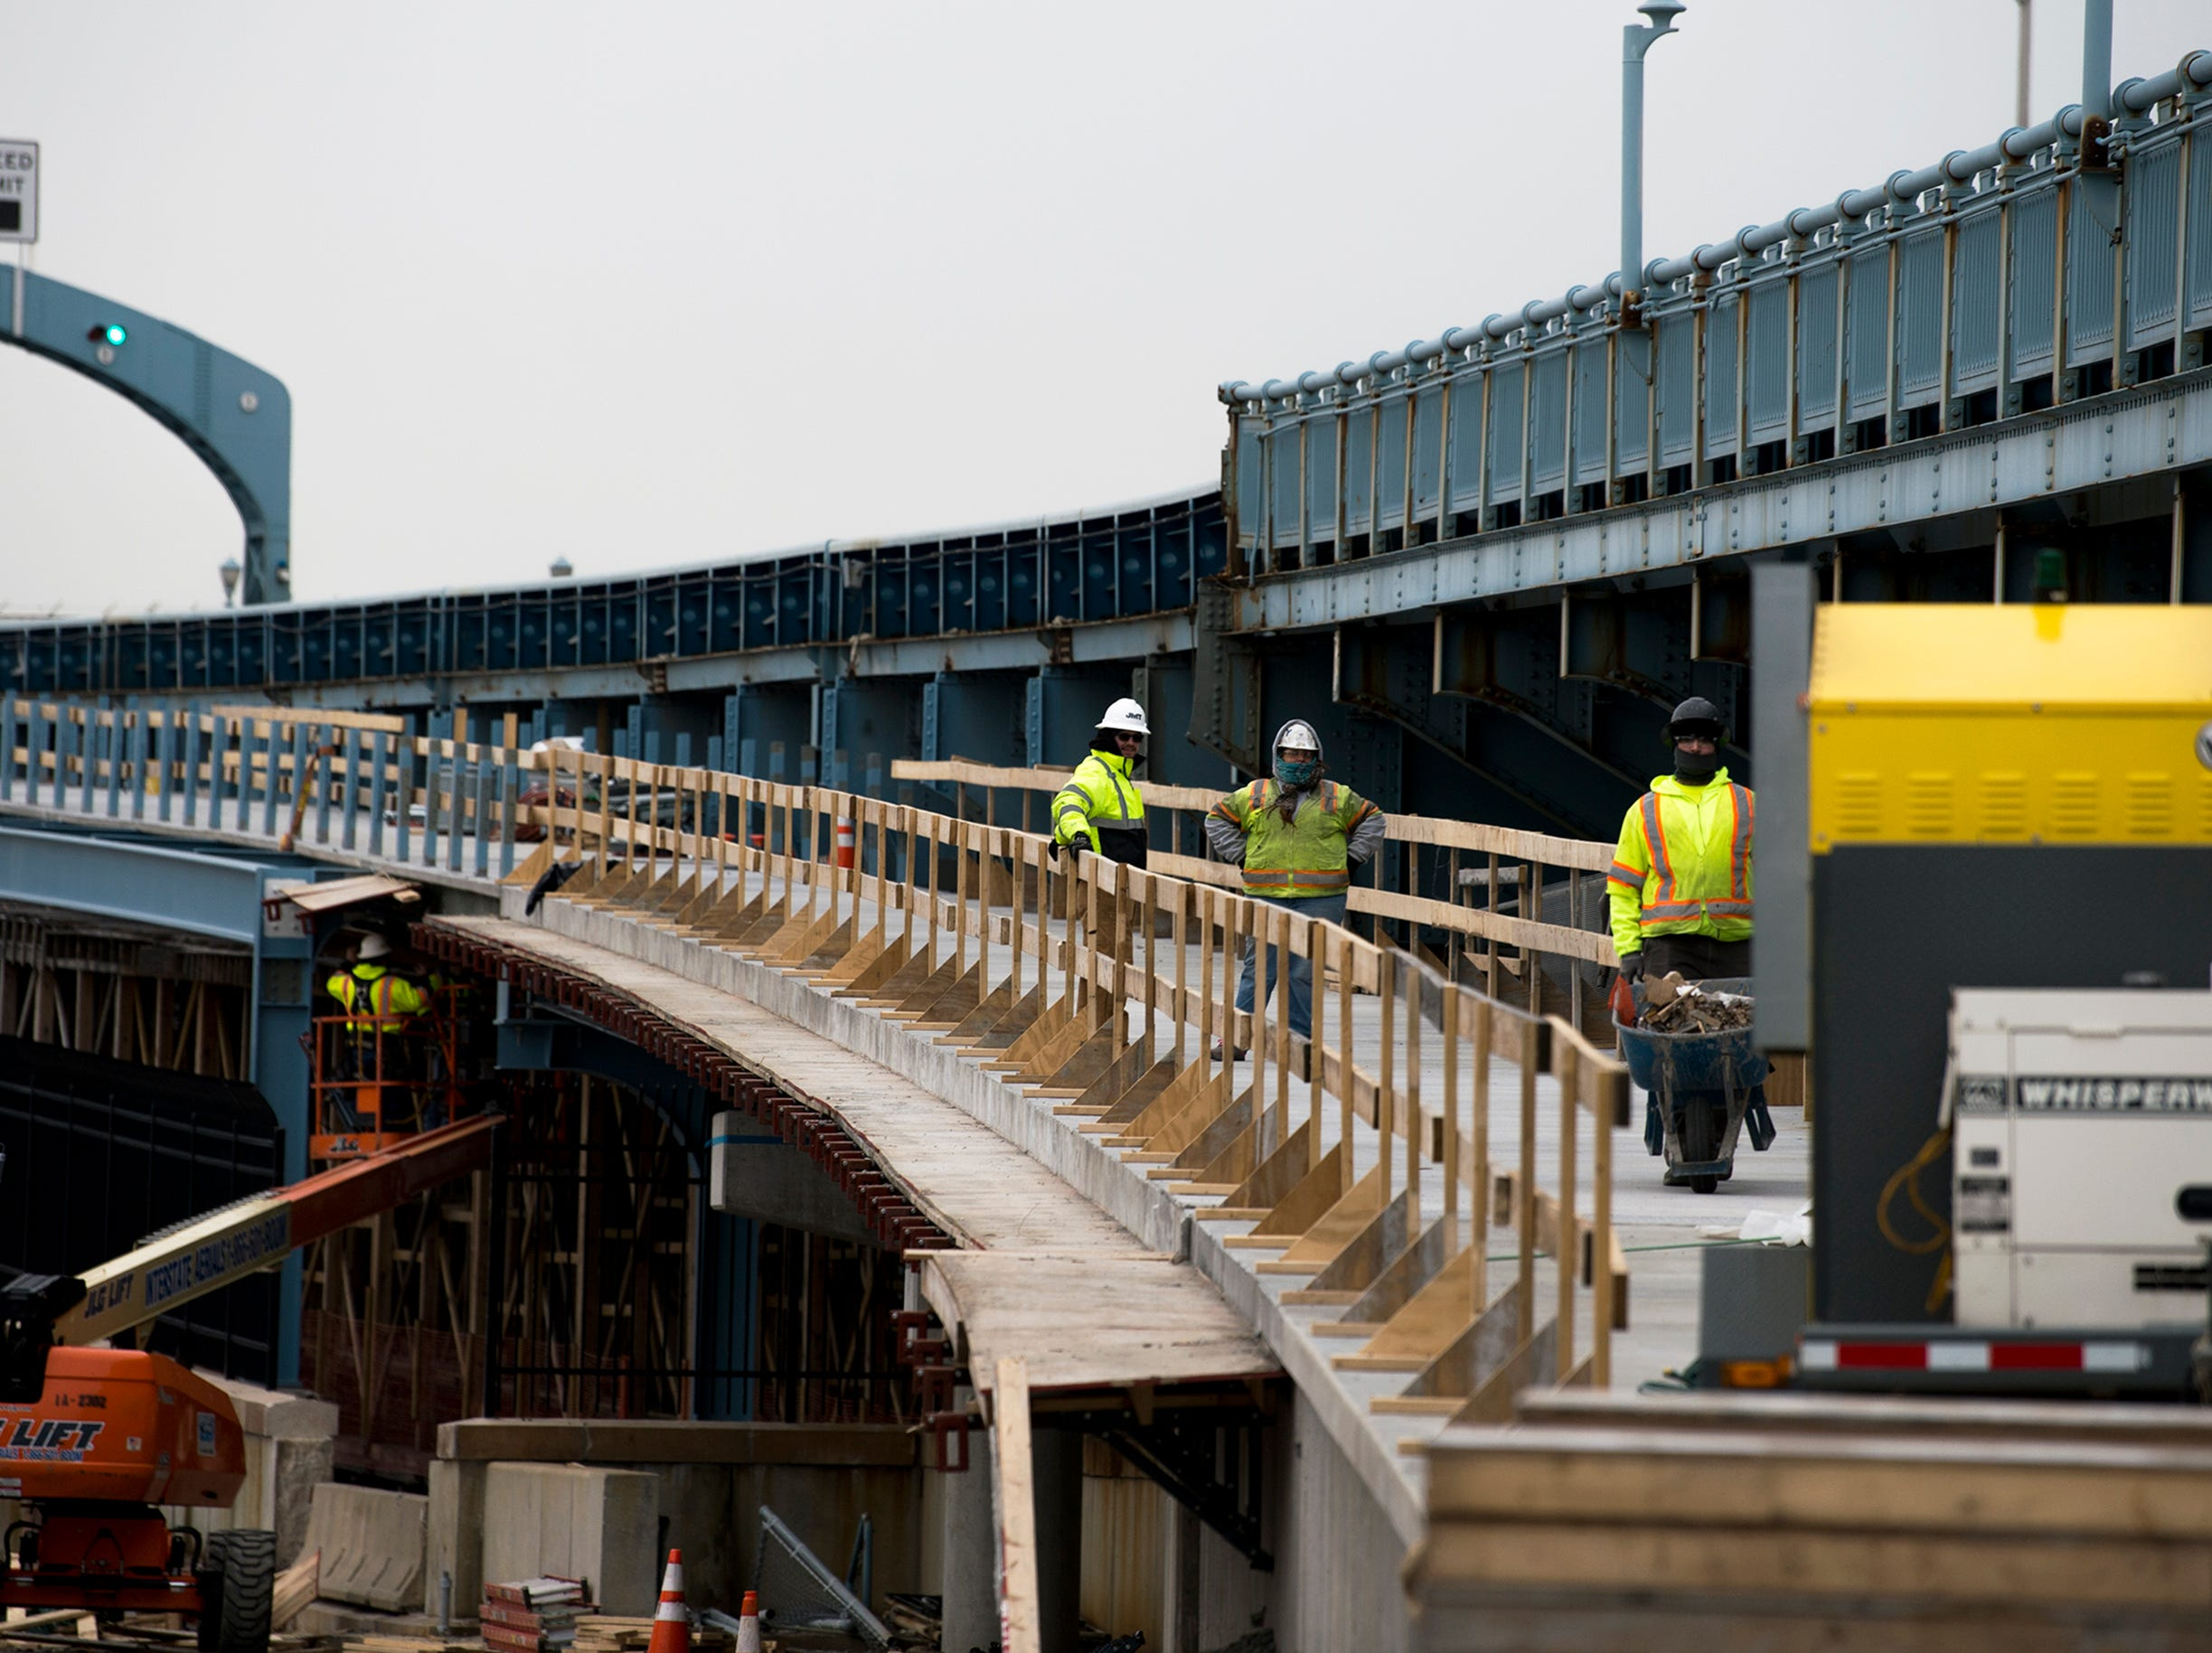 Construction continues on a pedestrian and bicycle ramp on the Benjamin Franklin Bridge Monday, Jan. 7, 2019 in Camden, N.J.